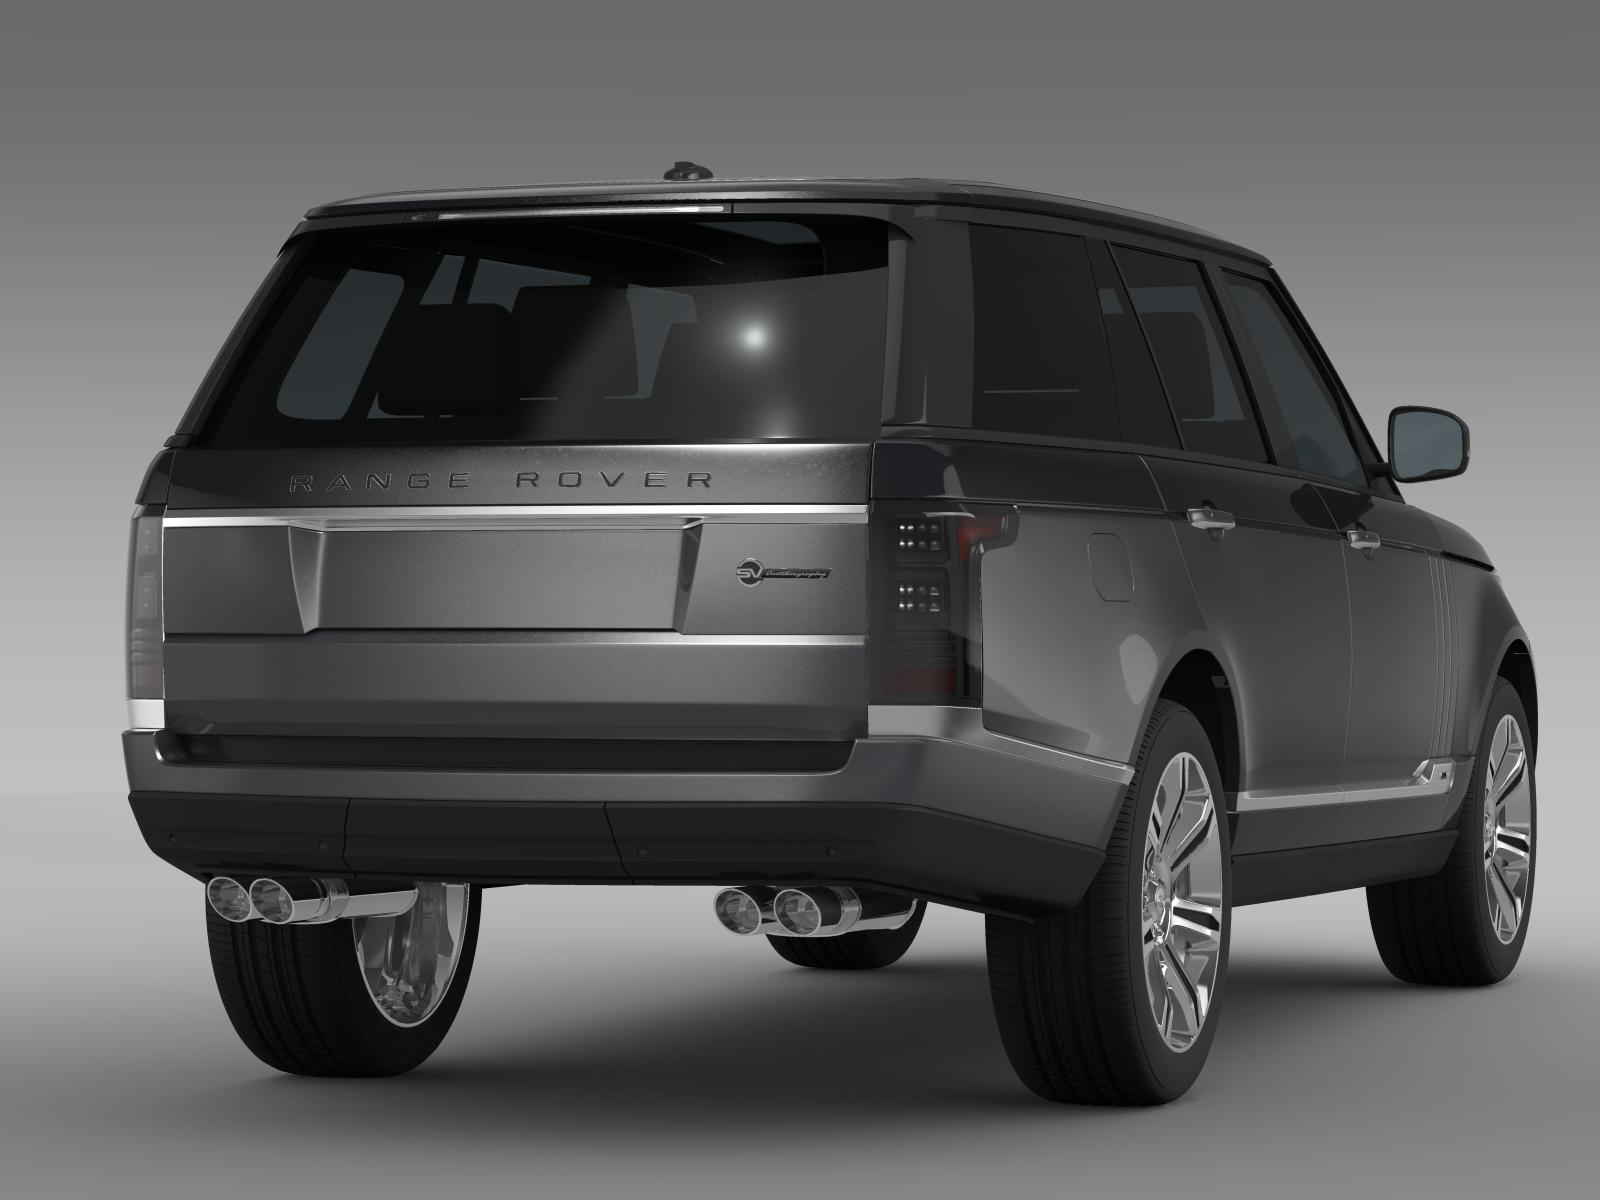 range rover svautobiography l405 2016 3d model buy range. Black Bedroom Furniture Sets. Home Design Ideas